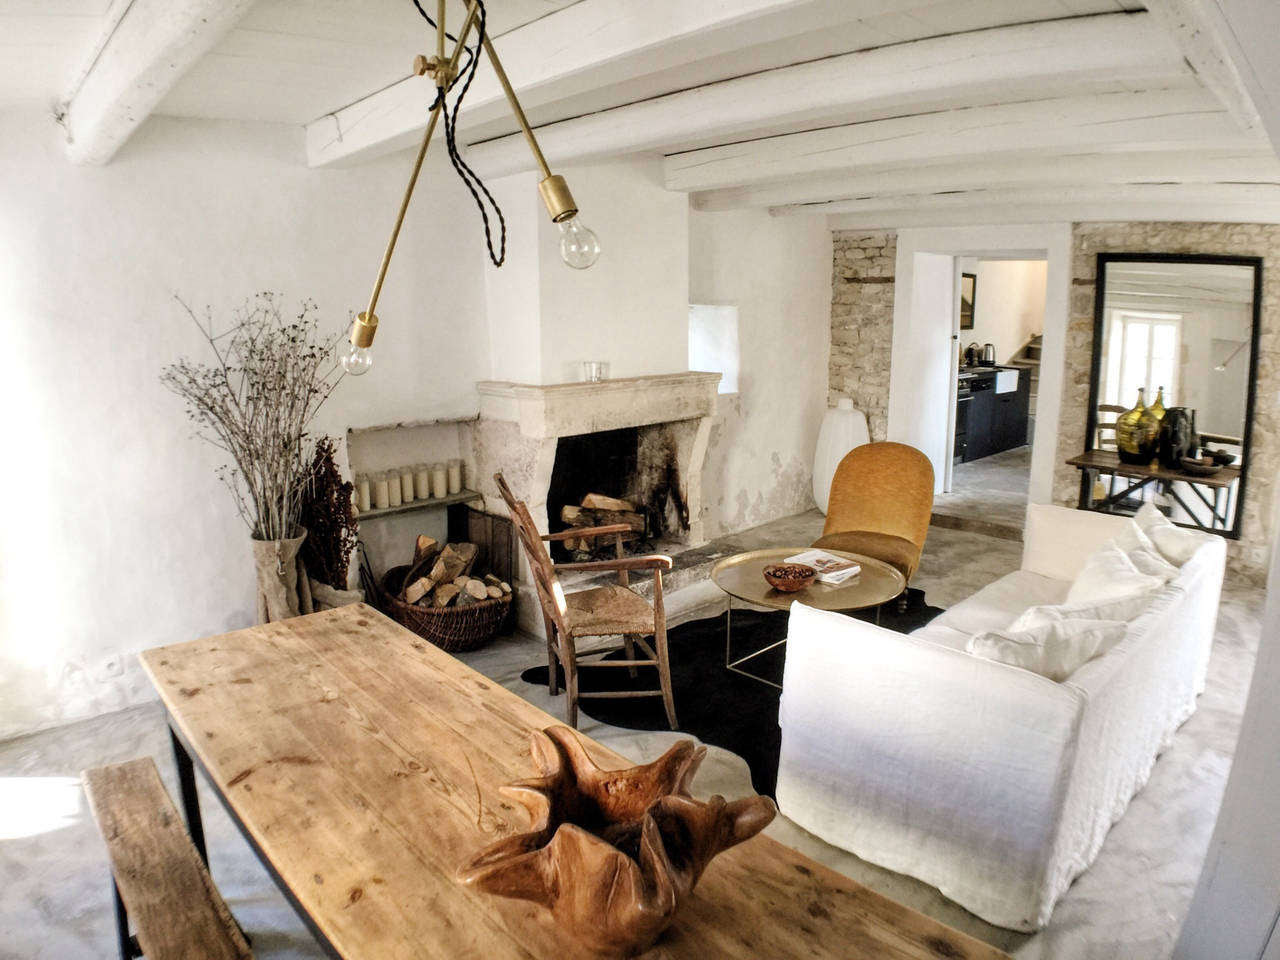 Steal This Look: Living Room at La Maison du Figuier in ...